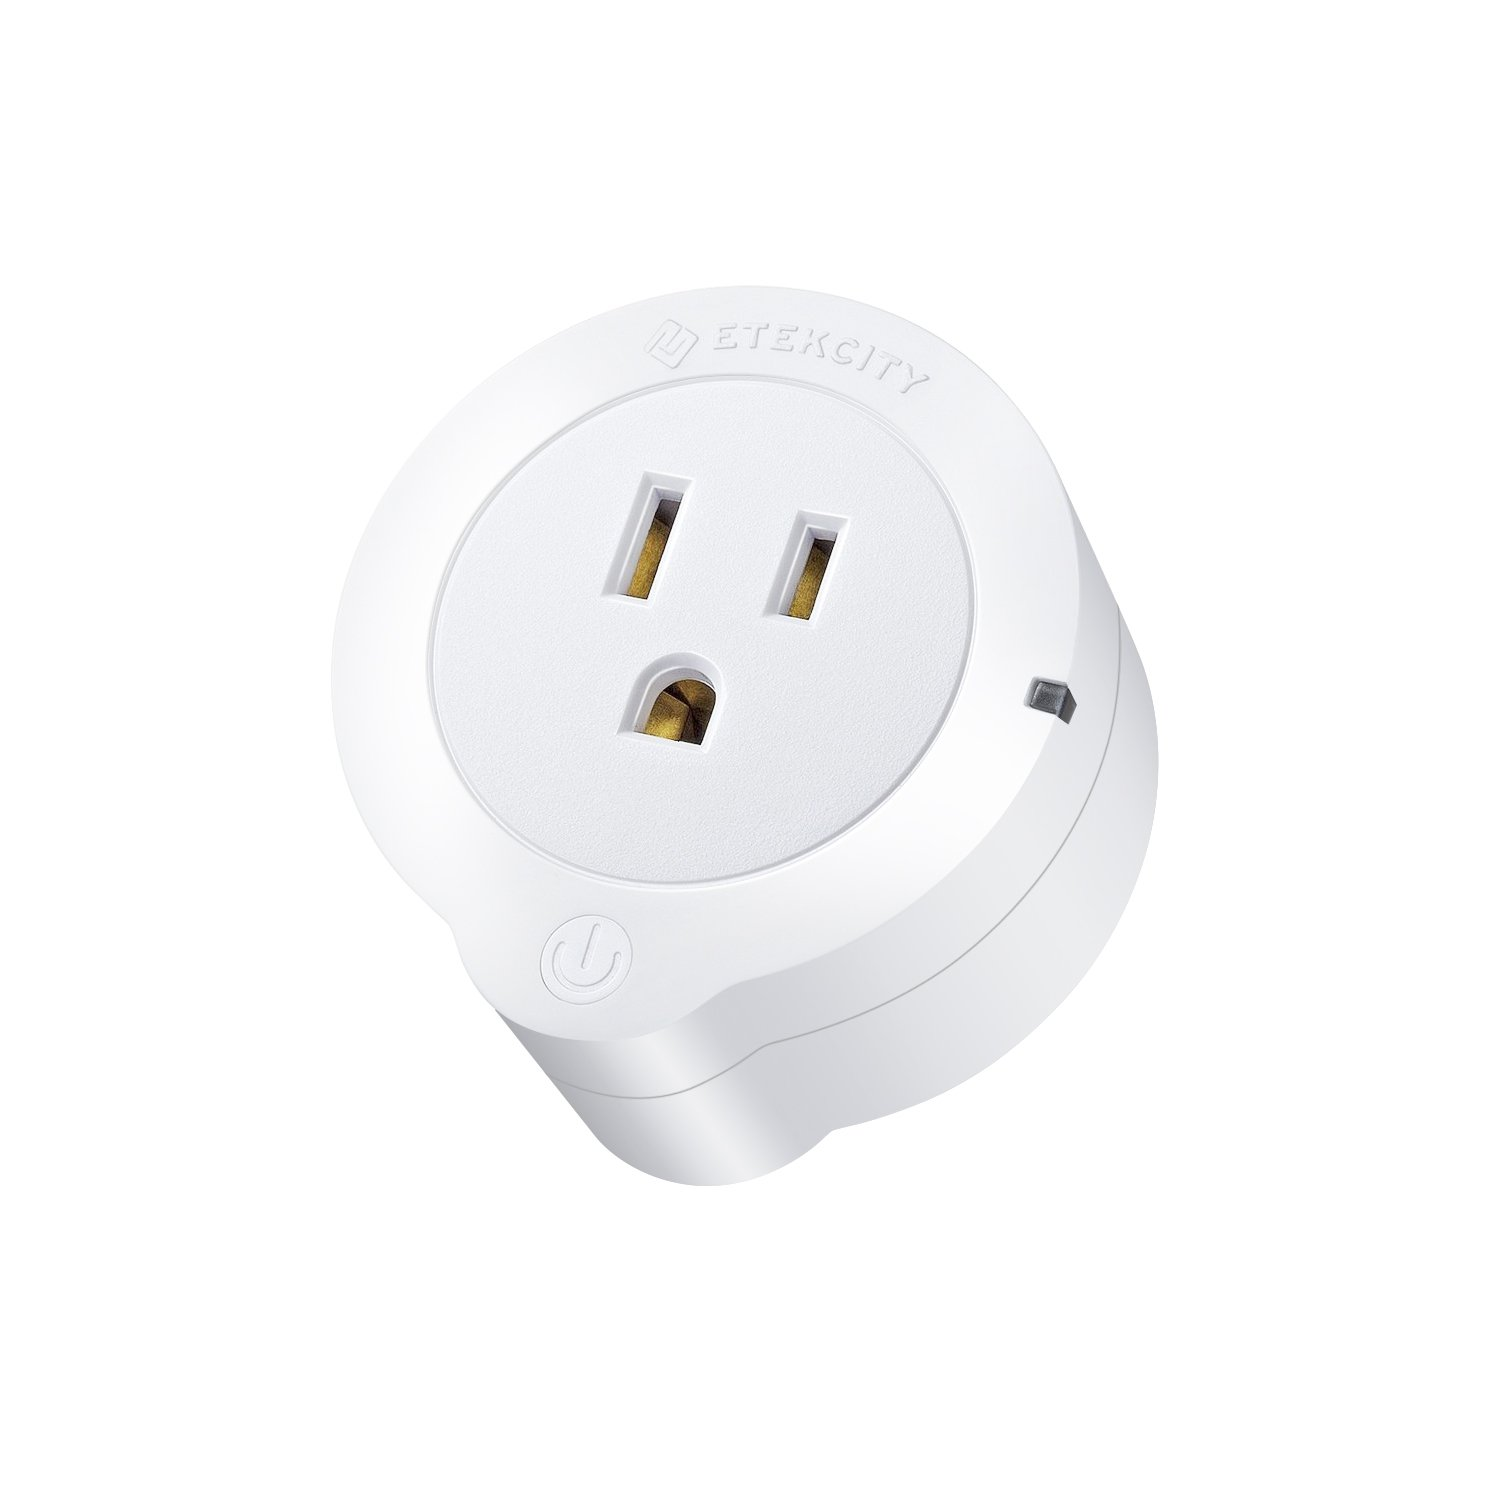 Etekcity WiFi Smart Plug, Voltson Mini Outlet with Energy Monitoring (1-Pack), No Hub Required, ETL Listed, White, Works with Alexa, Google Home and IFTTT